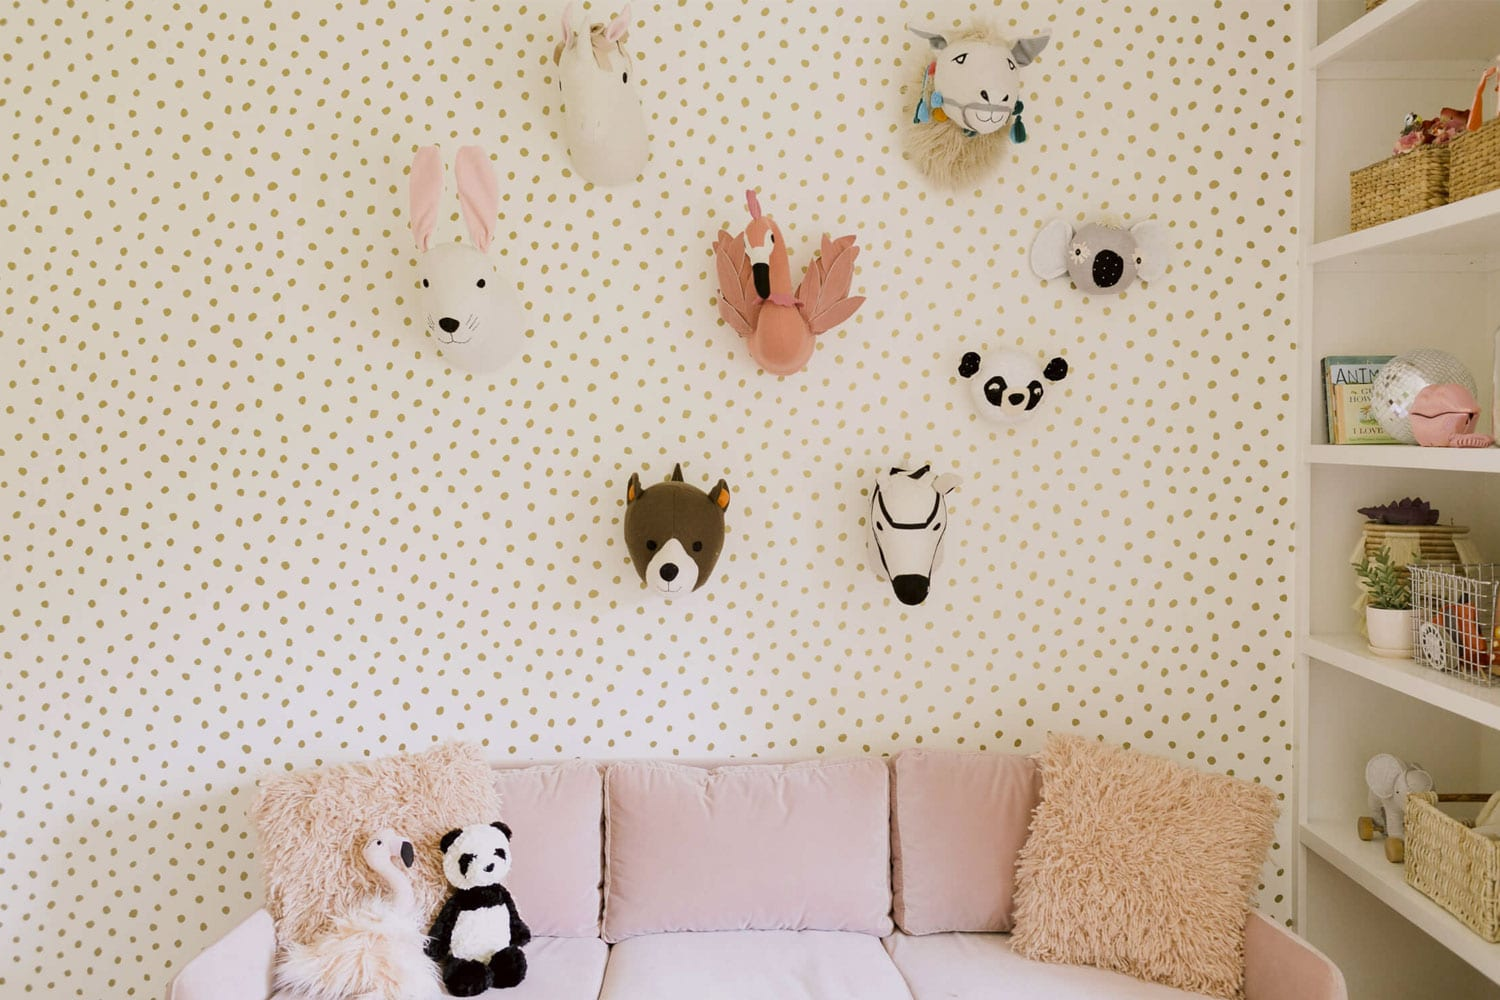 decoración con peluches